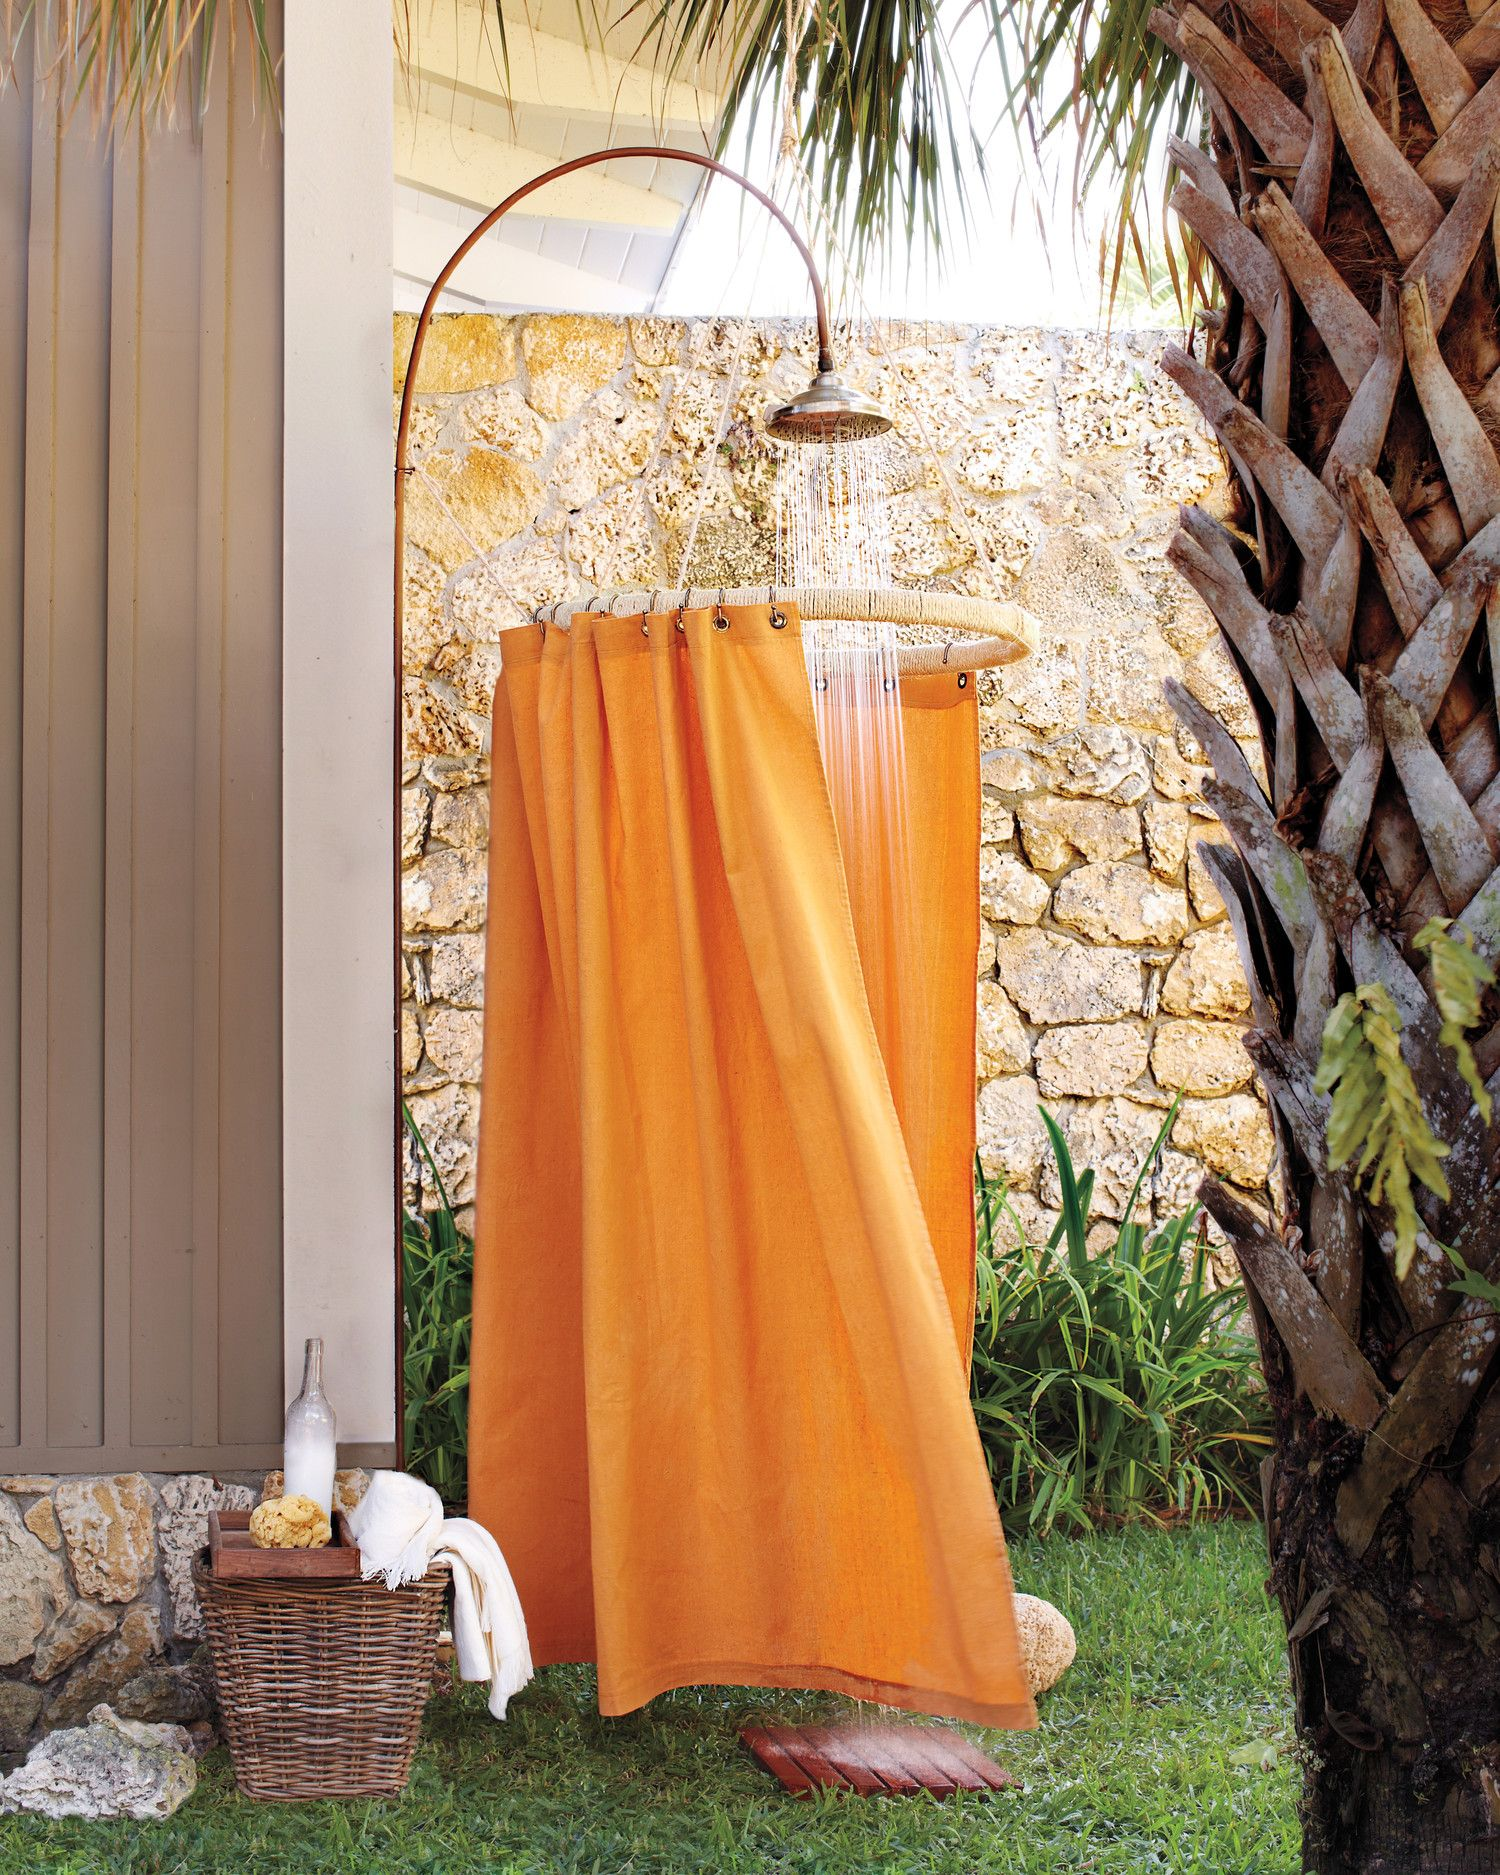 Drop Cloth Decor Outdoor Diy Projects Outside Showers Garden